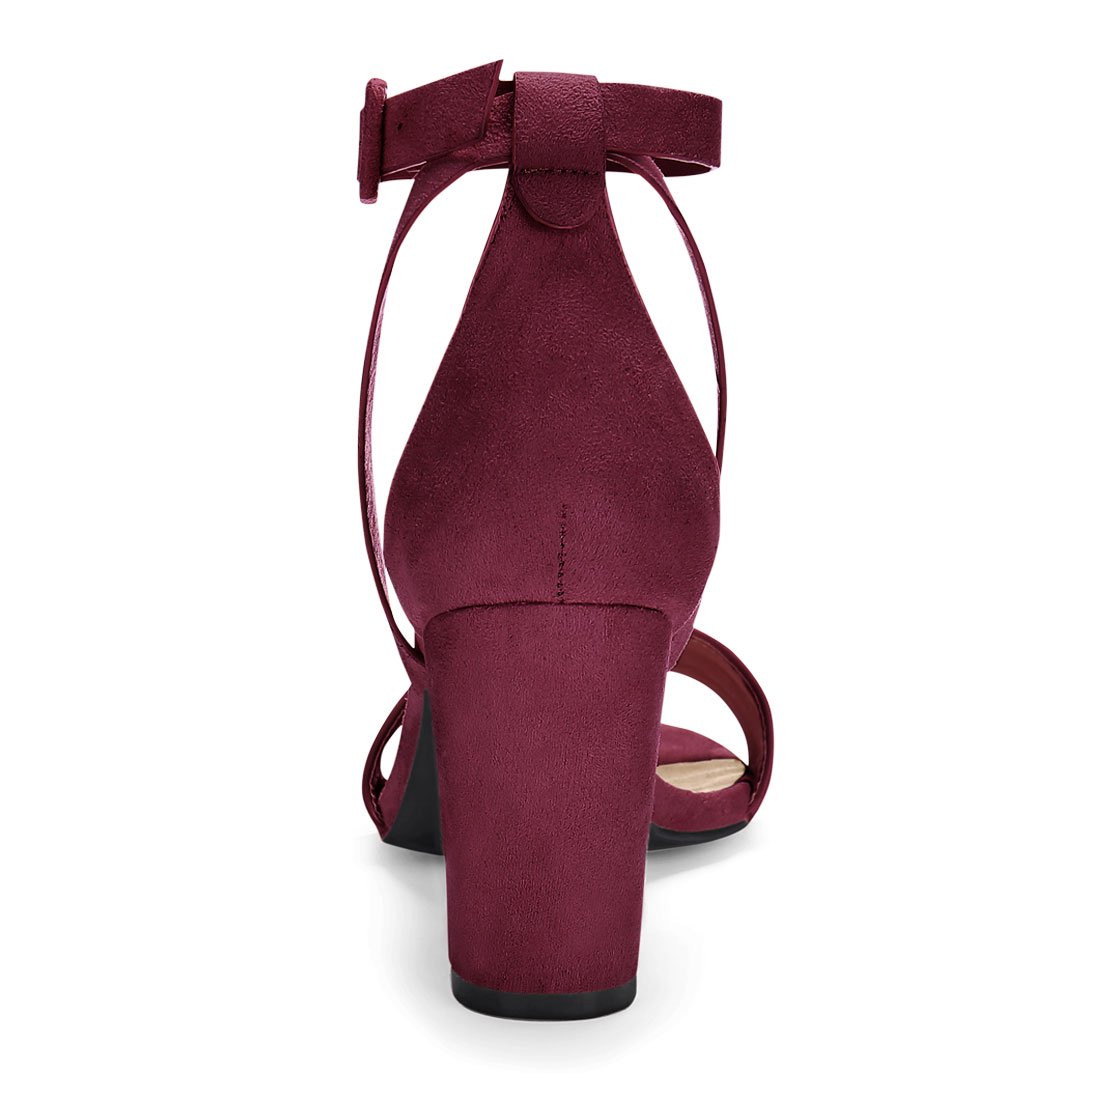 2fc00ad199a HJ284-5 Women PU Panel Piped Chunky Heel Ankle Strap Sandals Burgundy US  5.5